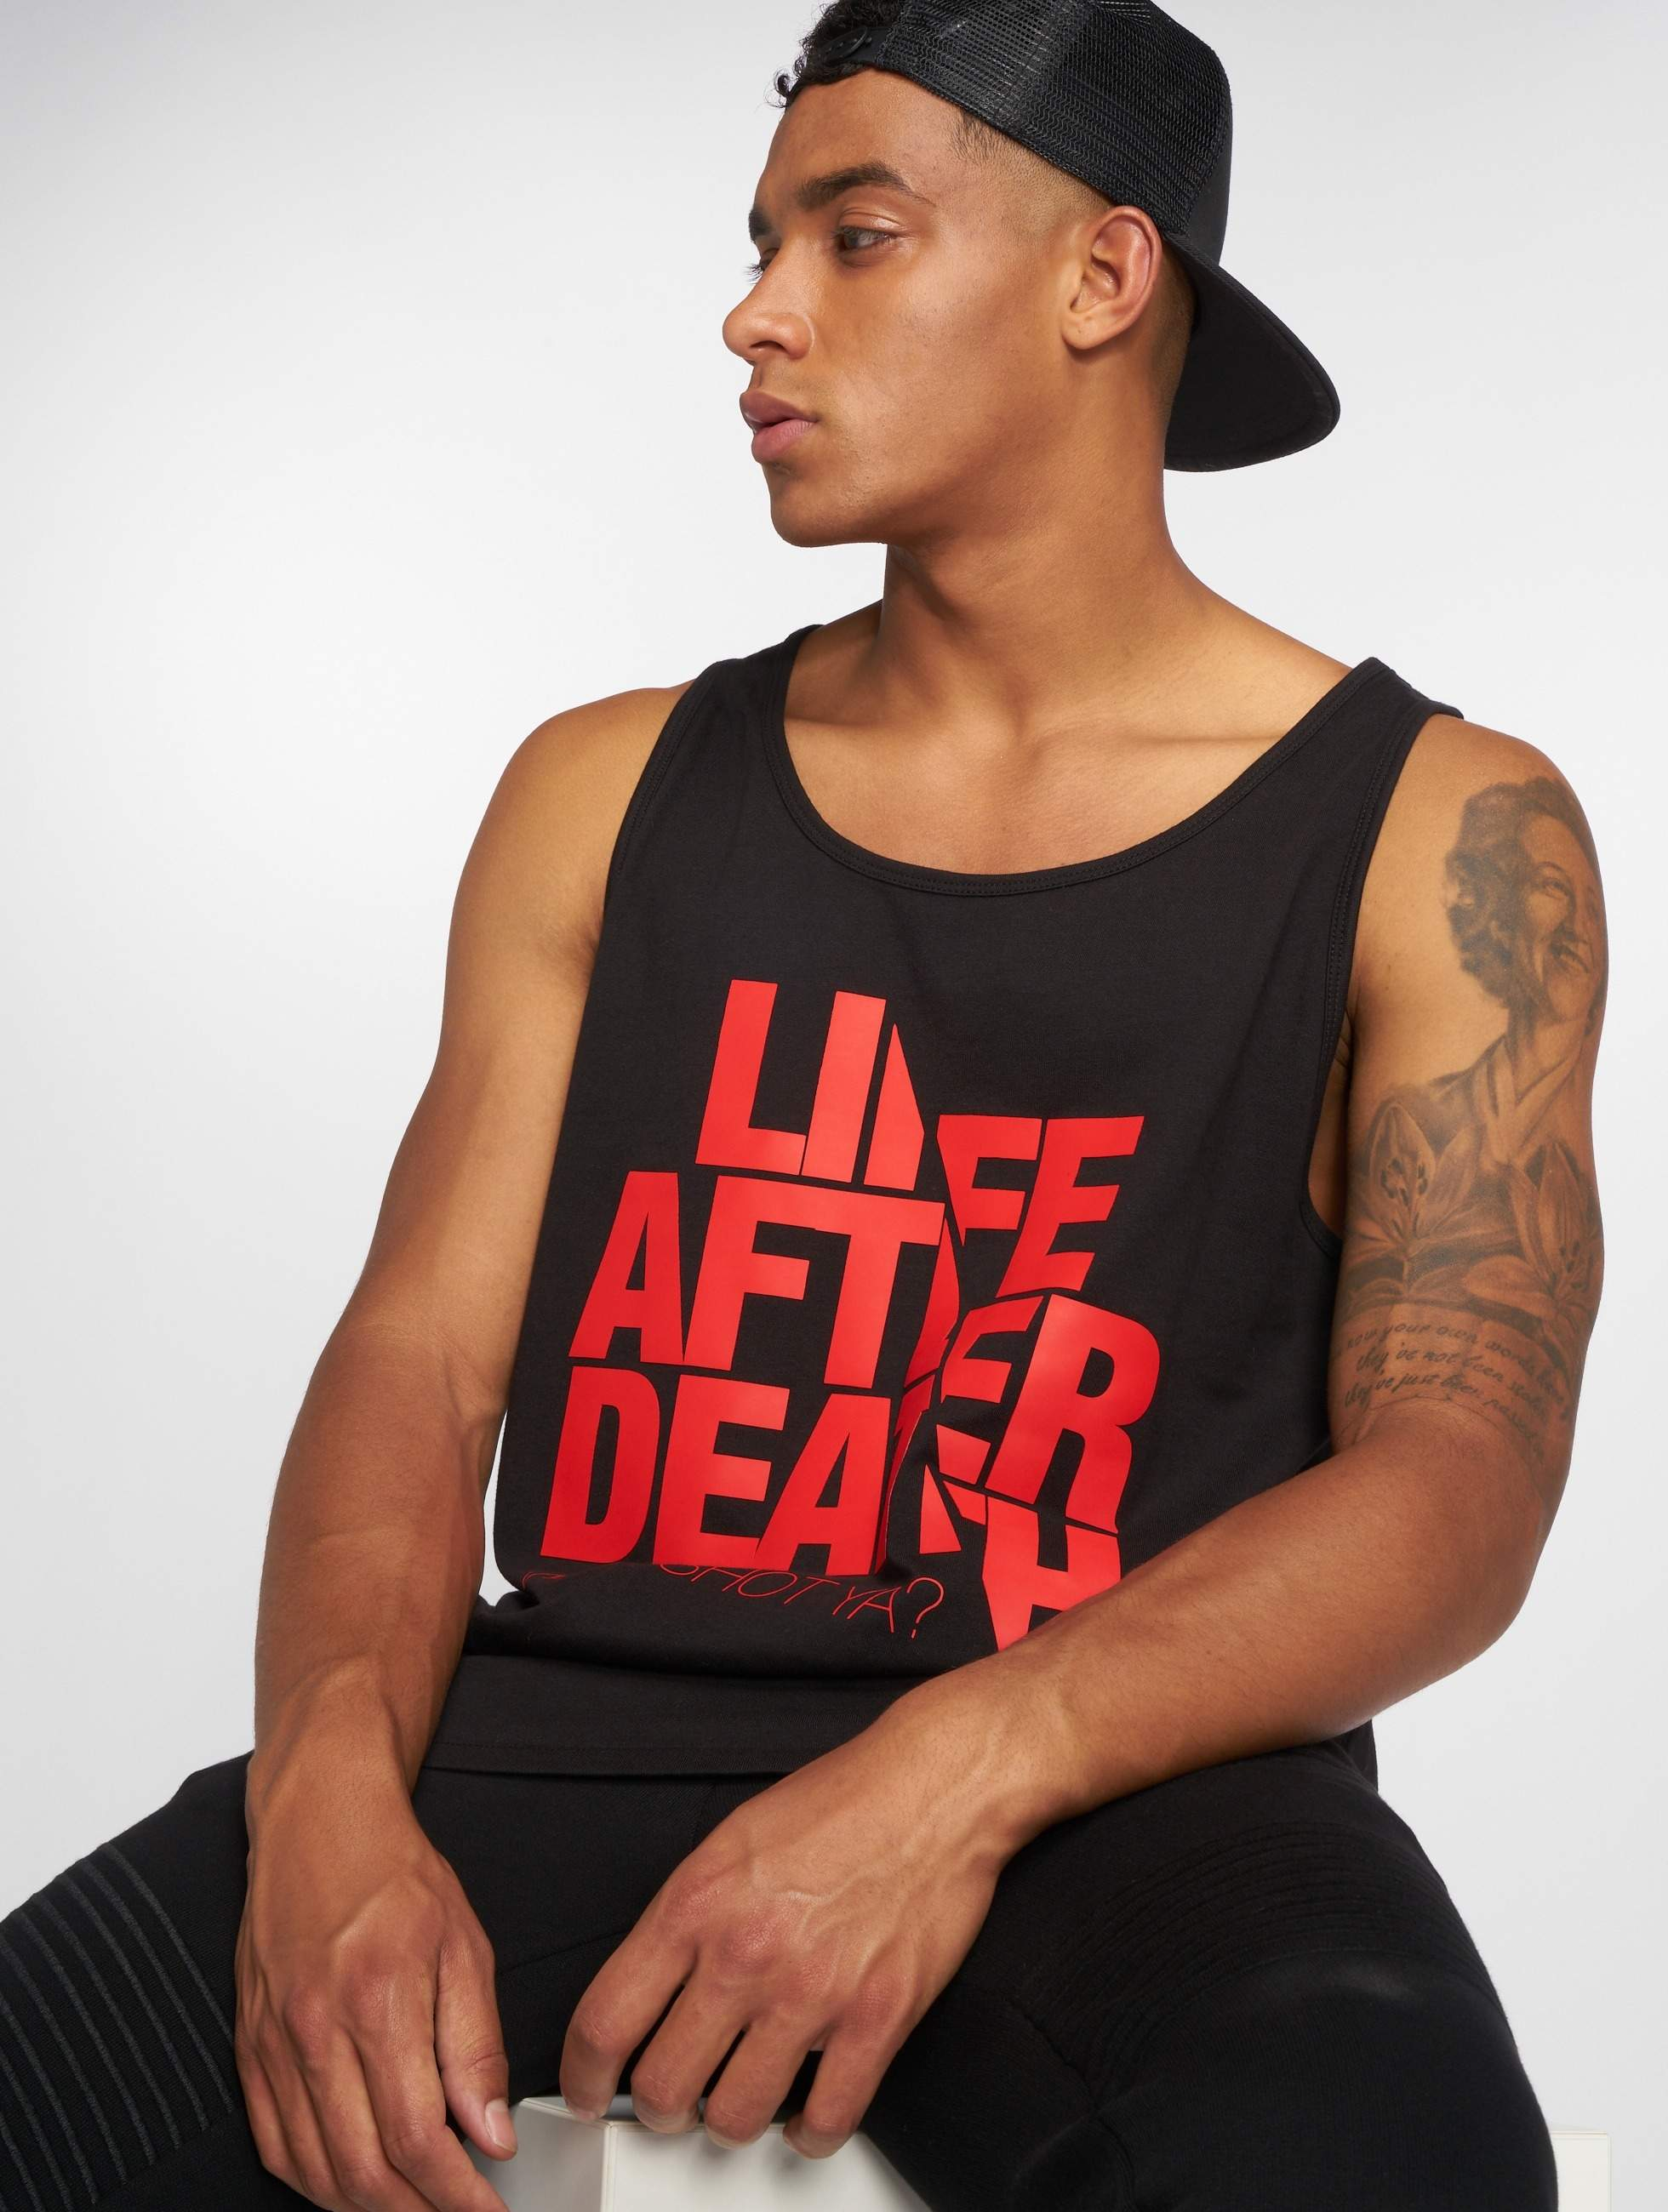 Who Shot Ya? / Tank Tops Life after death in black XL